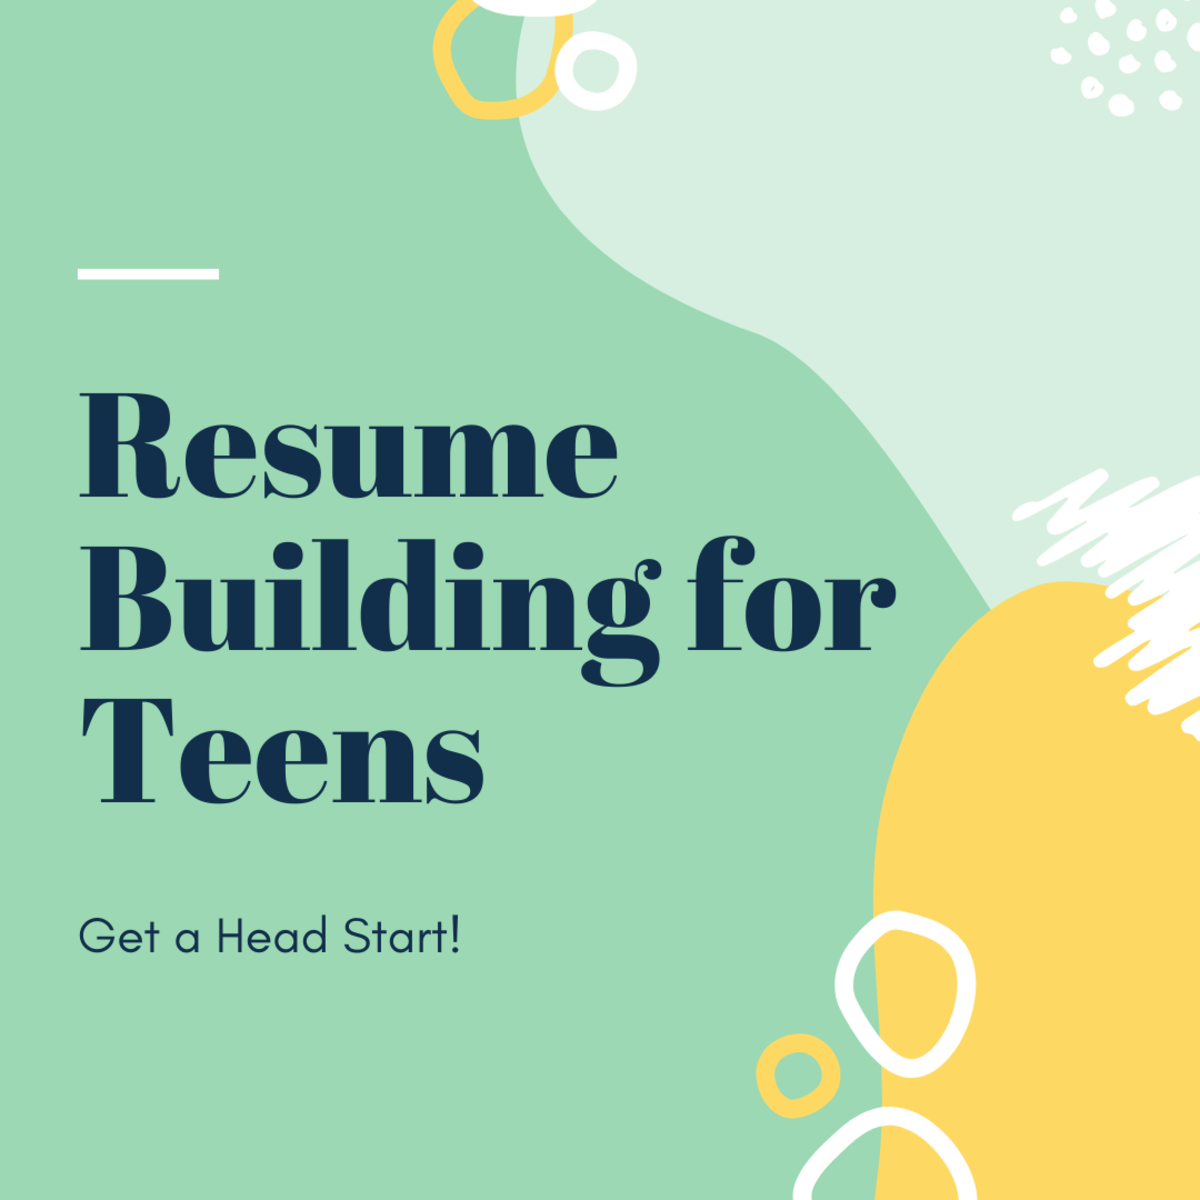 Read on to learn how a teen can build their resume in anticipation of a future career.